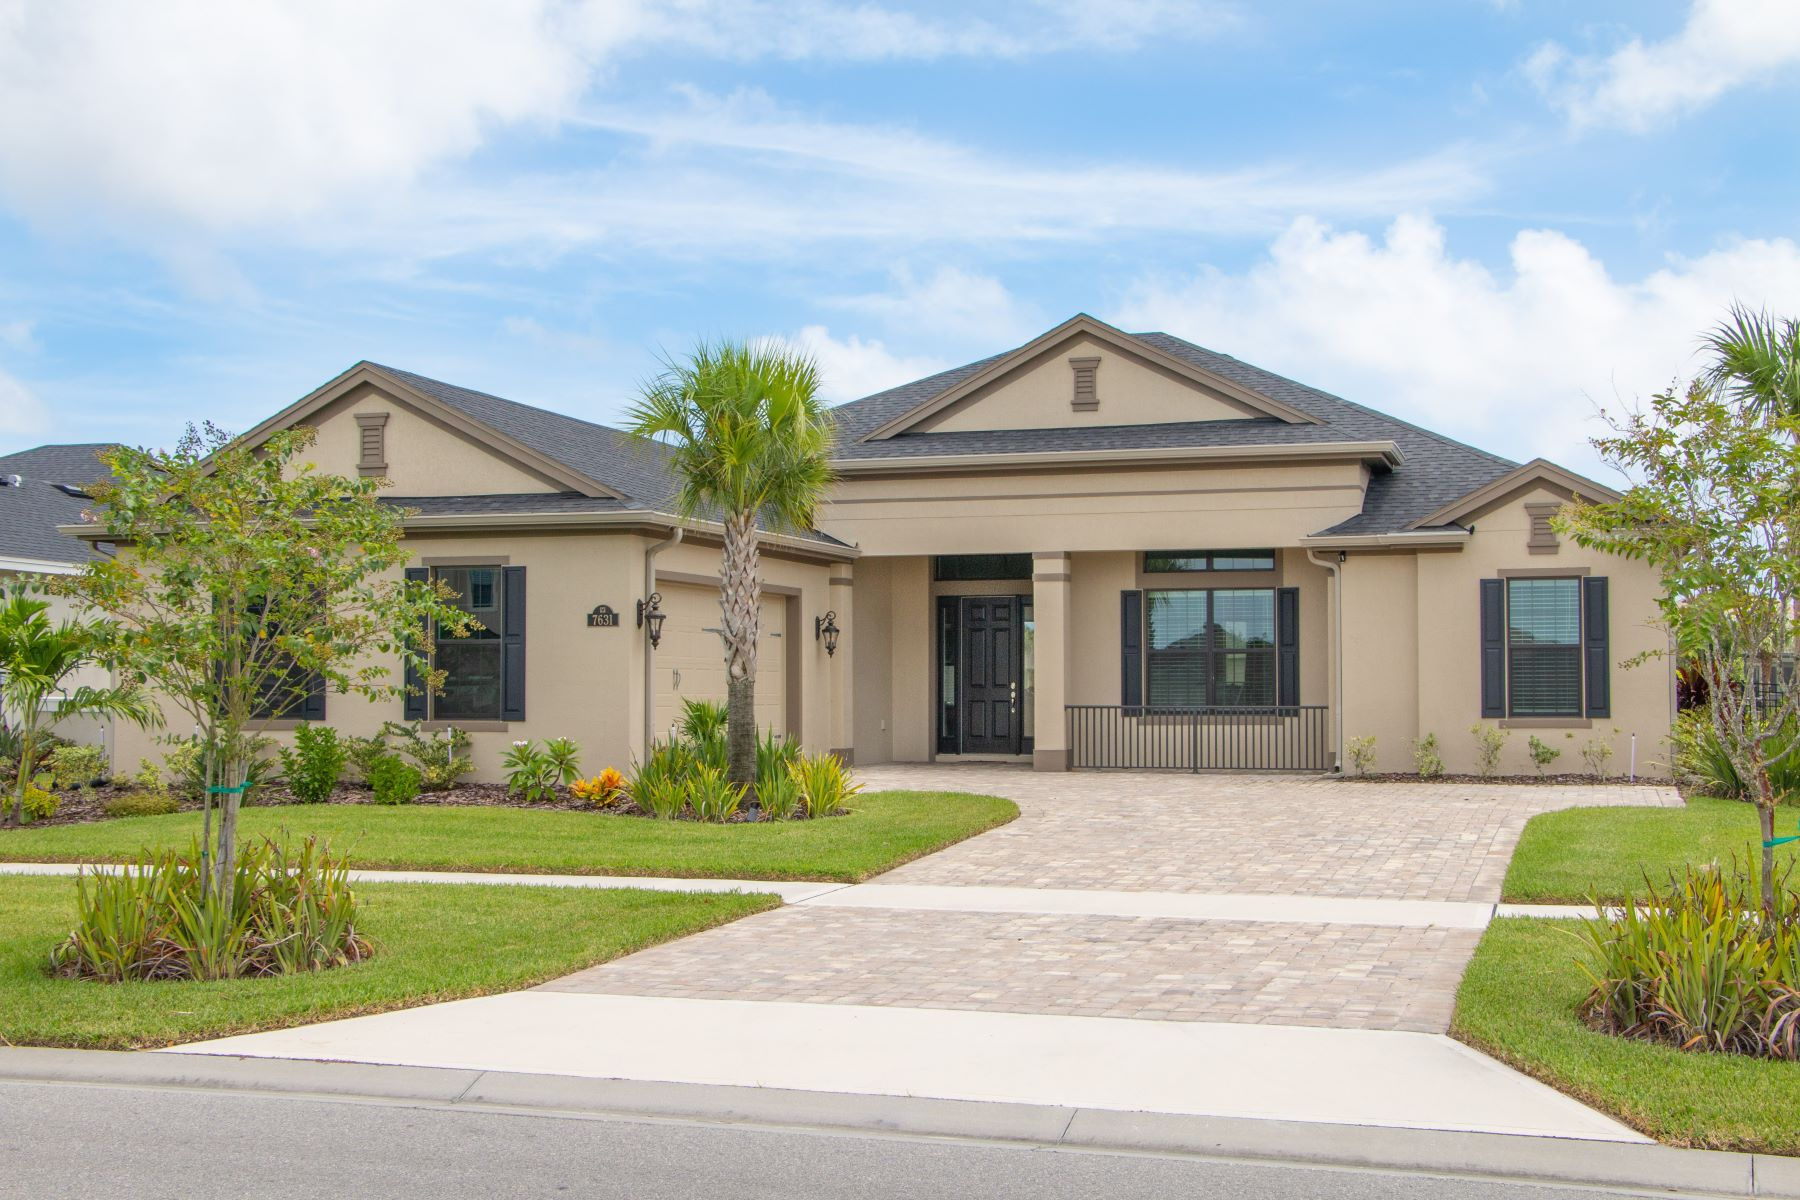 Single Family Homes for Sale at 7631 Paragrass Avenue, Melbourne, FL 7631 Paragrass Avenue Melbourne, Florida 32940 United States